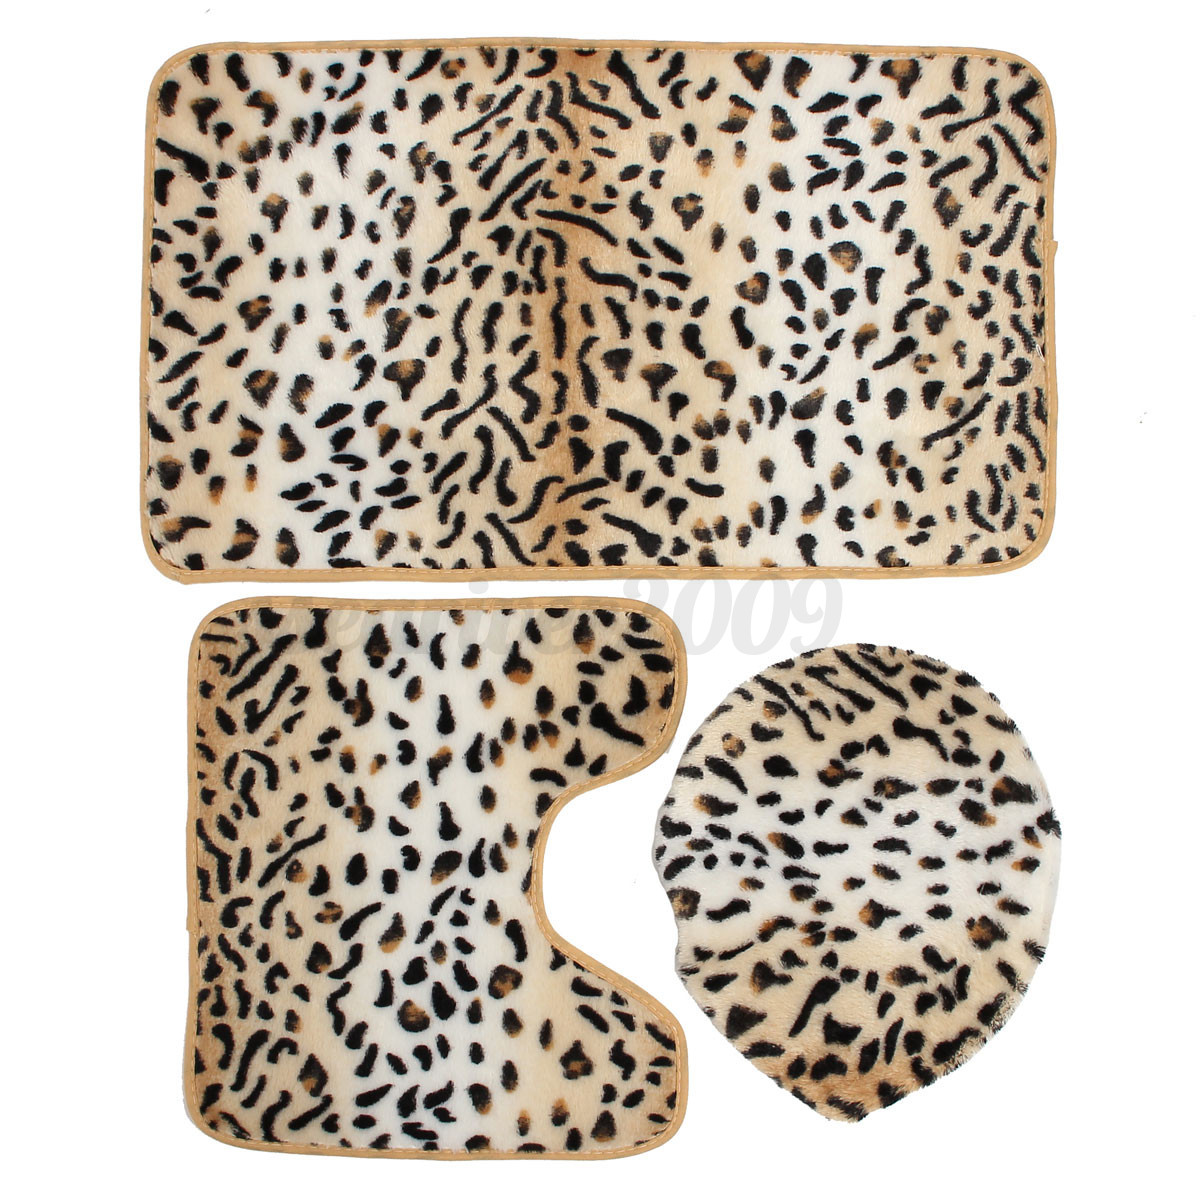 Zebra Leopard Print Set 3 Toilet Seat Cover Bathroom Mat